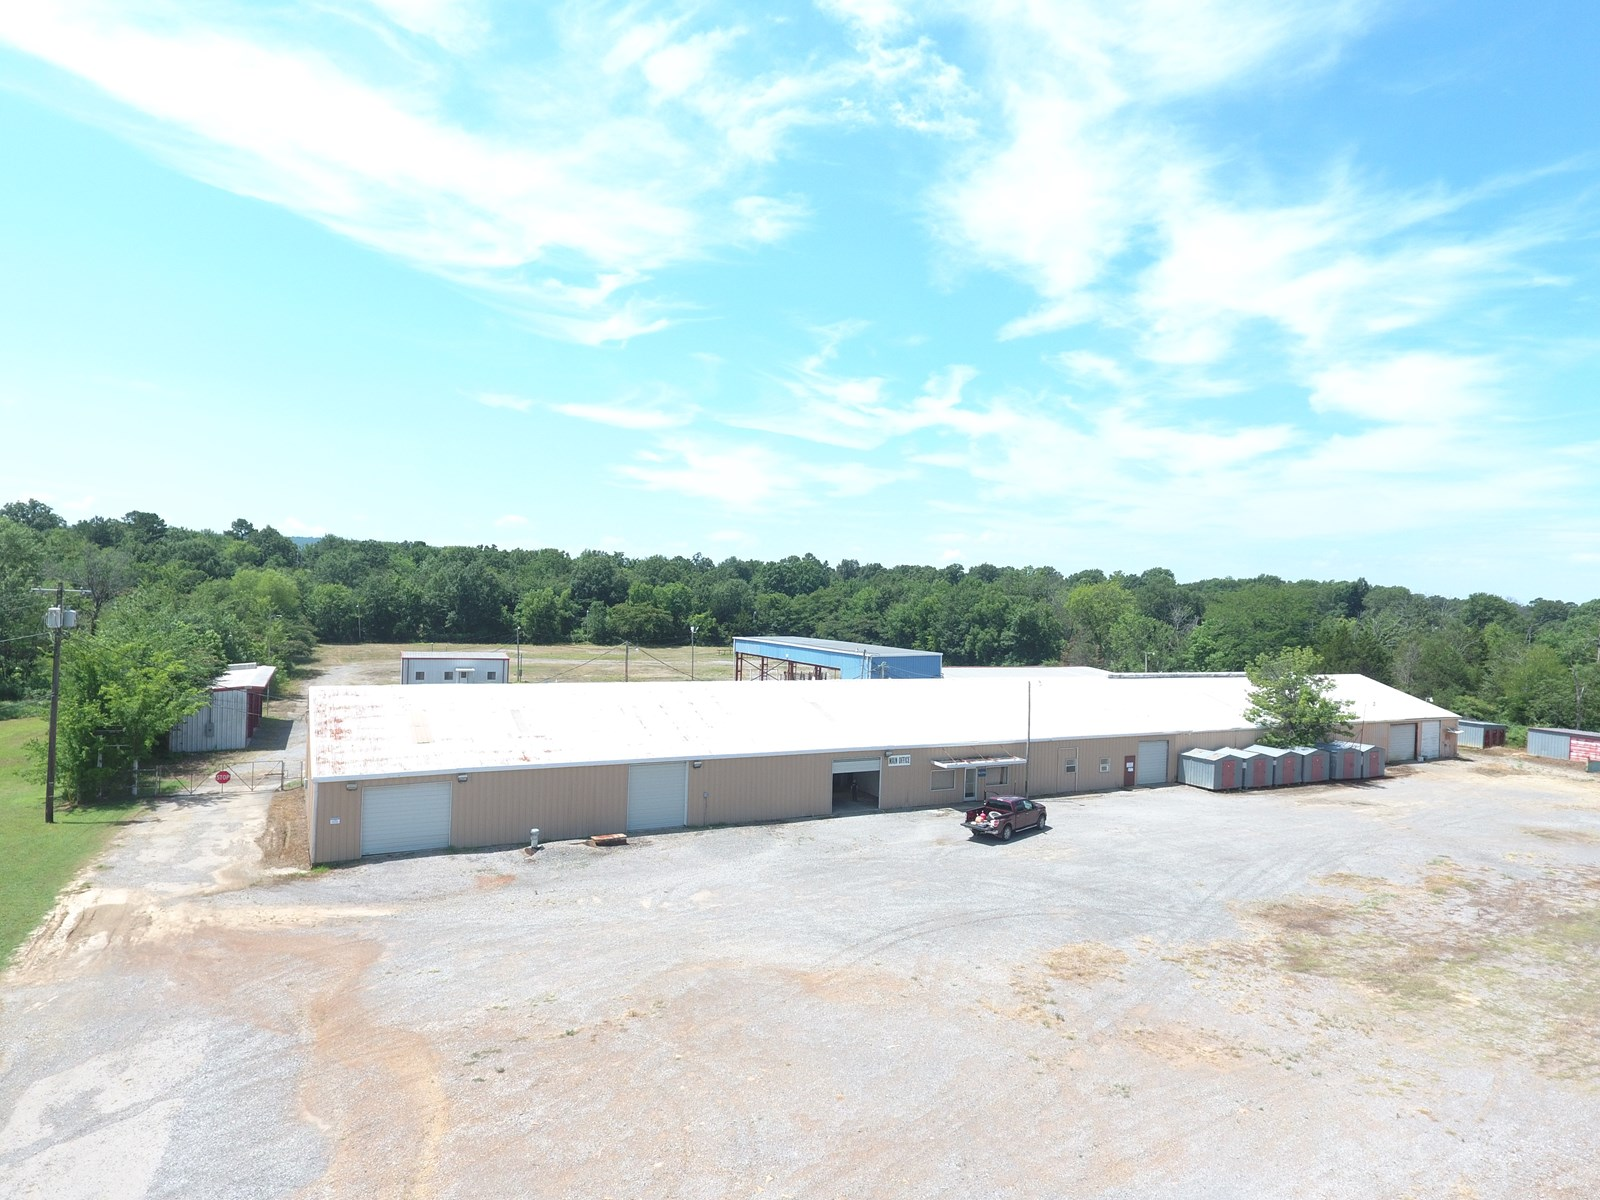 Oil field yard- Commercial property southeast Oklahoma